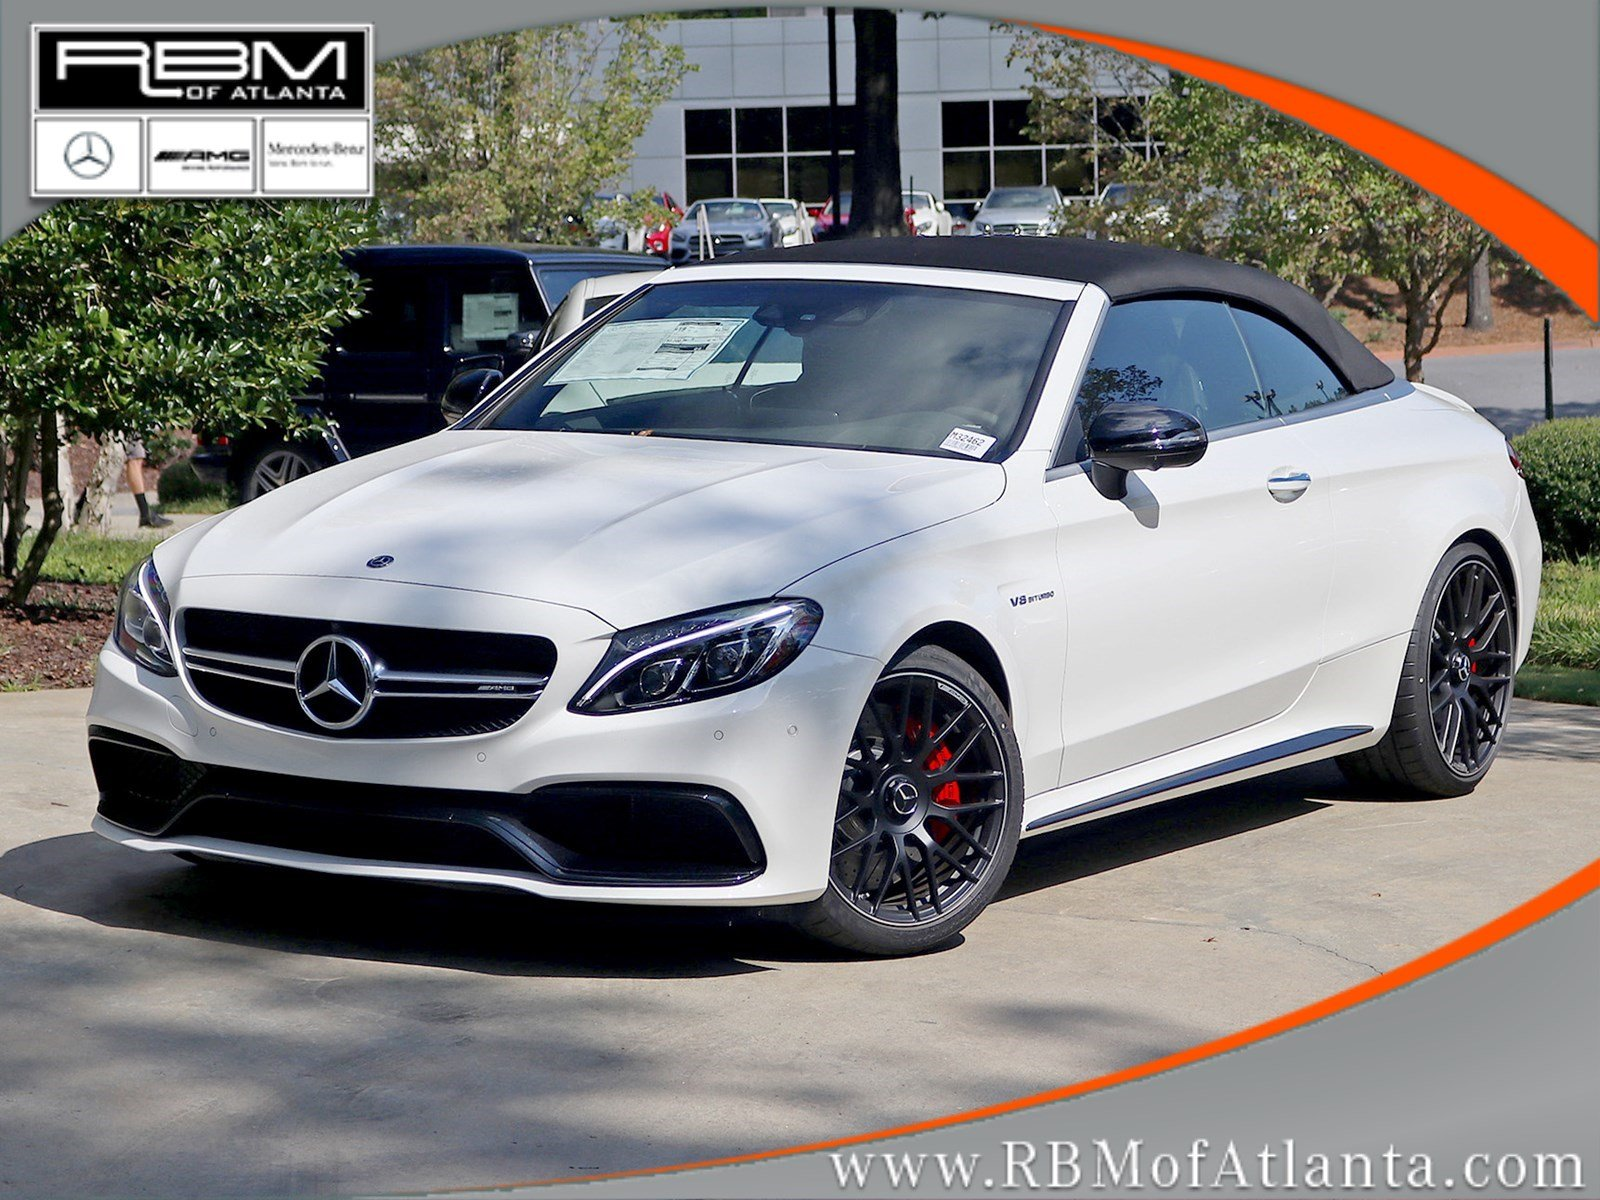 new 2018 mercedes benz c class amg c 63 s cabriolet cabriolet in atlanta m32462 rbm of atlanta. Black Bedroom Furniture Sets. Home Design Ideas